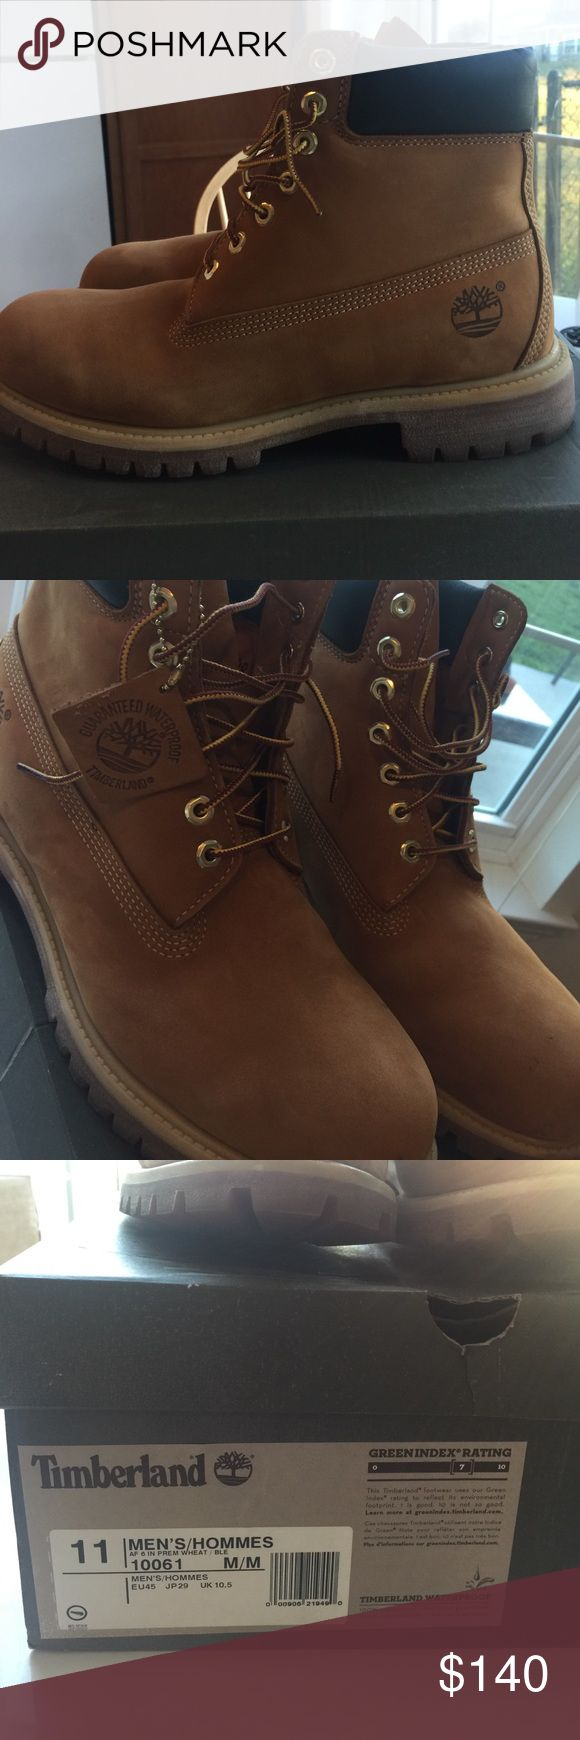 Timberland MENS boots 6 in premium size 11 MENS SIZE 11 Timberland 6 in premium boots only worn ONCE! Like new Timberland Shoes Winter & Rain Boots